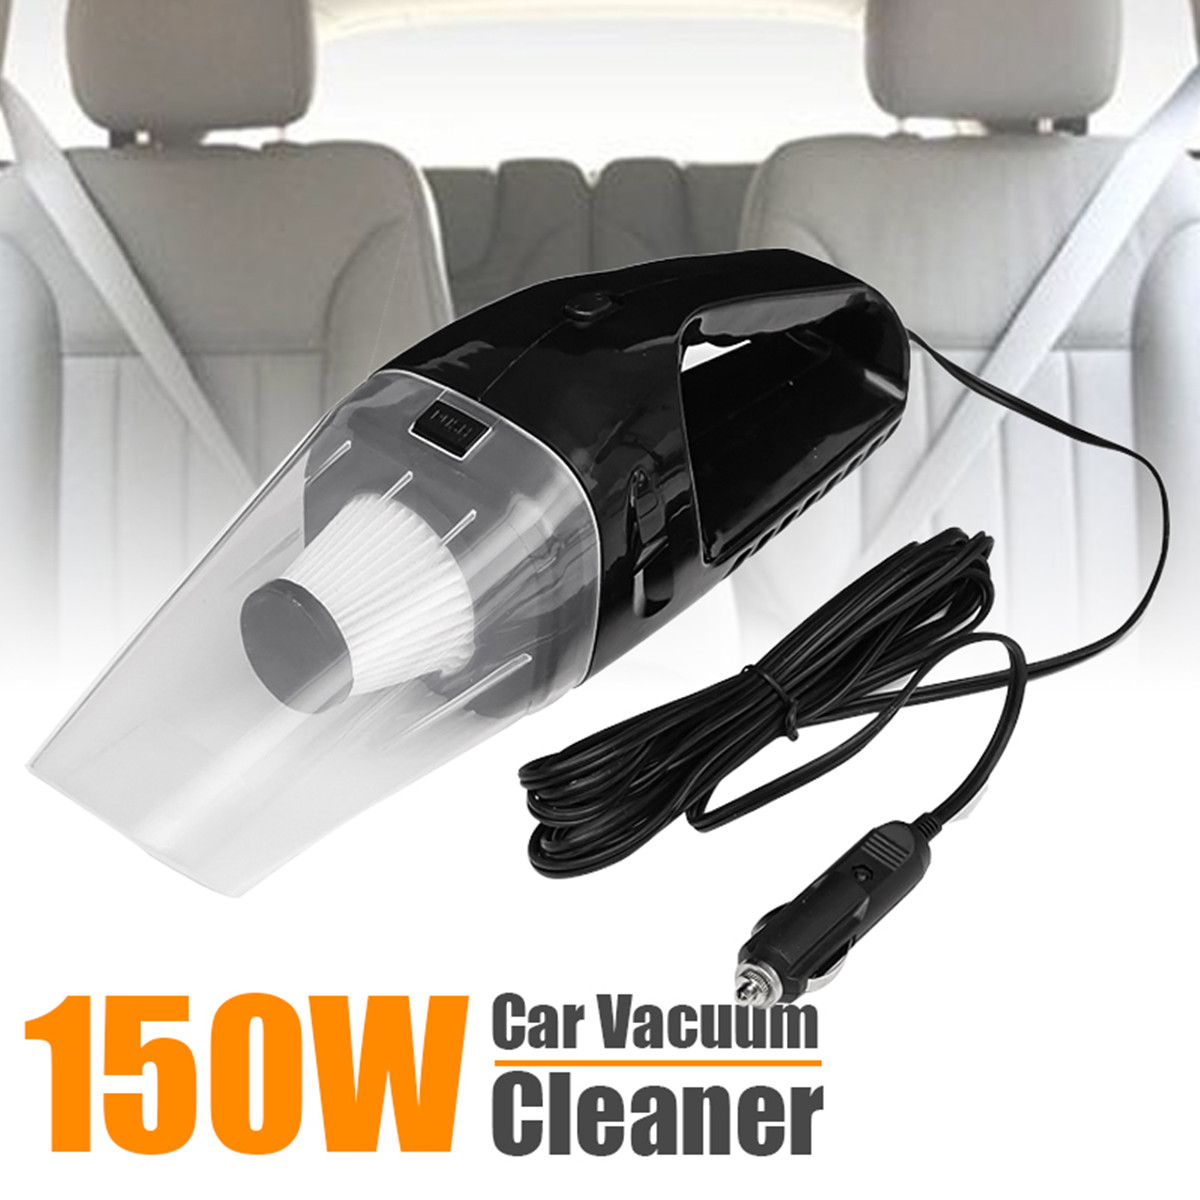 Are 12v Car Vacuums Worth Buying? [Guide]